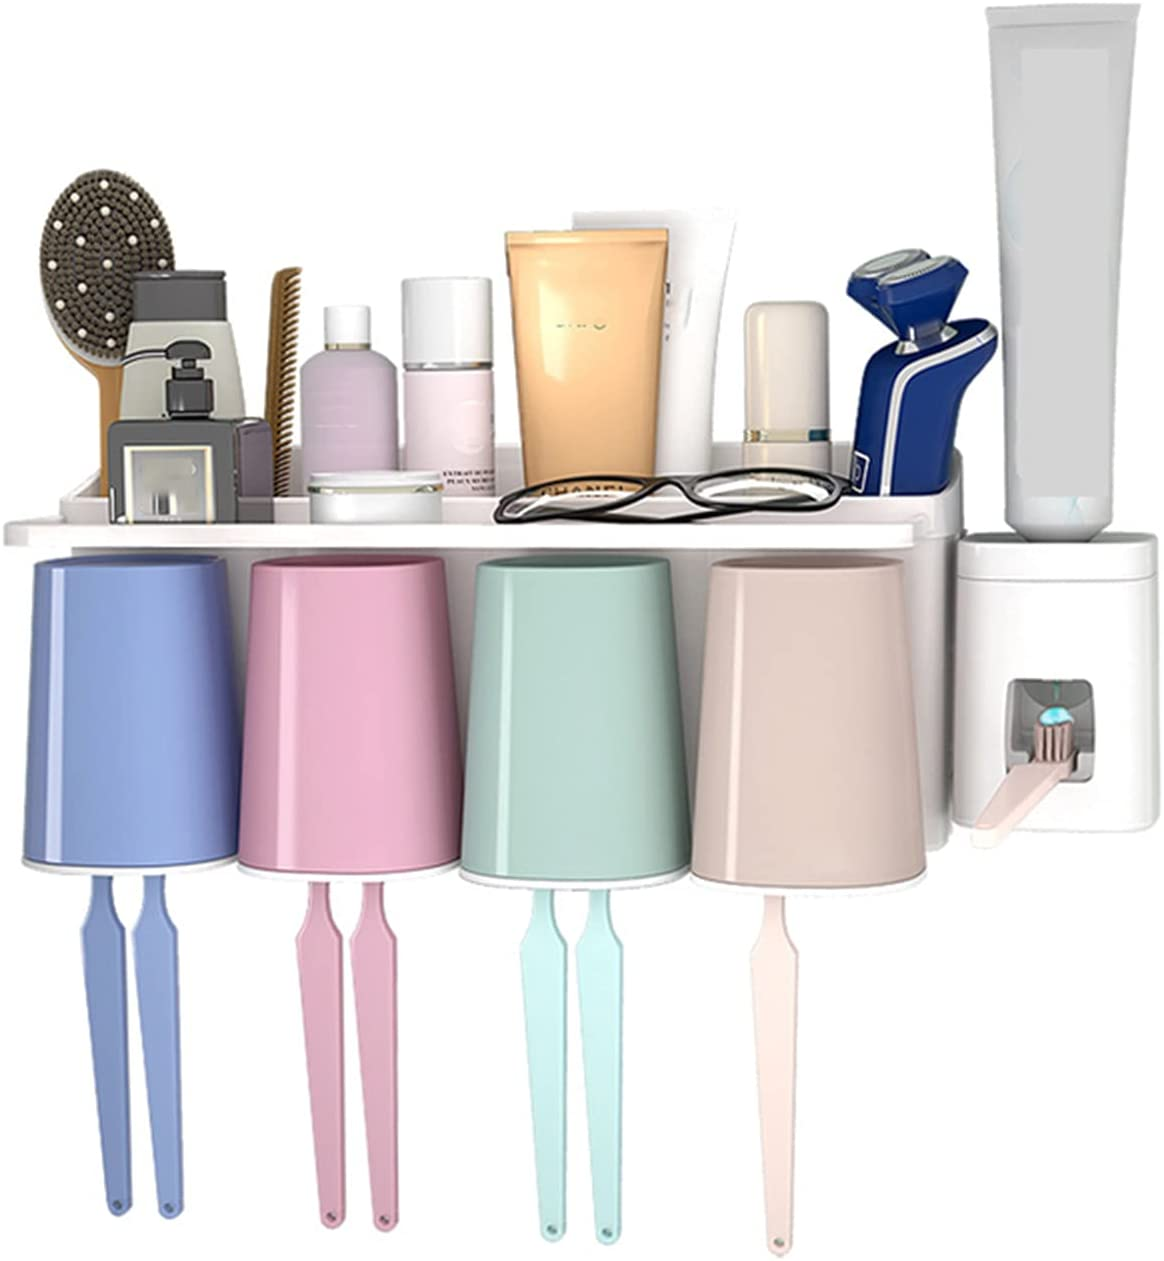 Toothbrush Holder Wall Multifunctional Mounted Special Max 48% OFF price for a limited time Cover